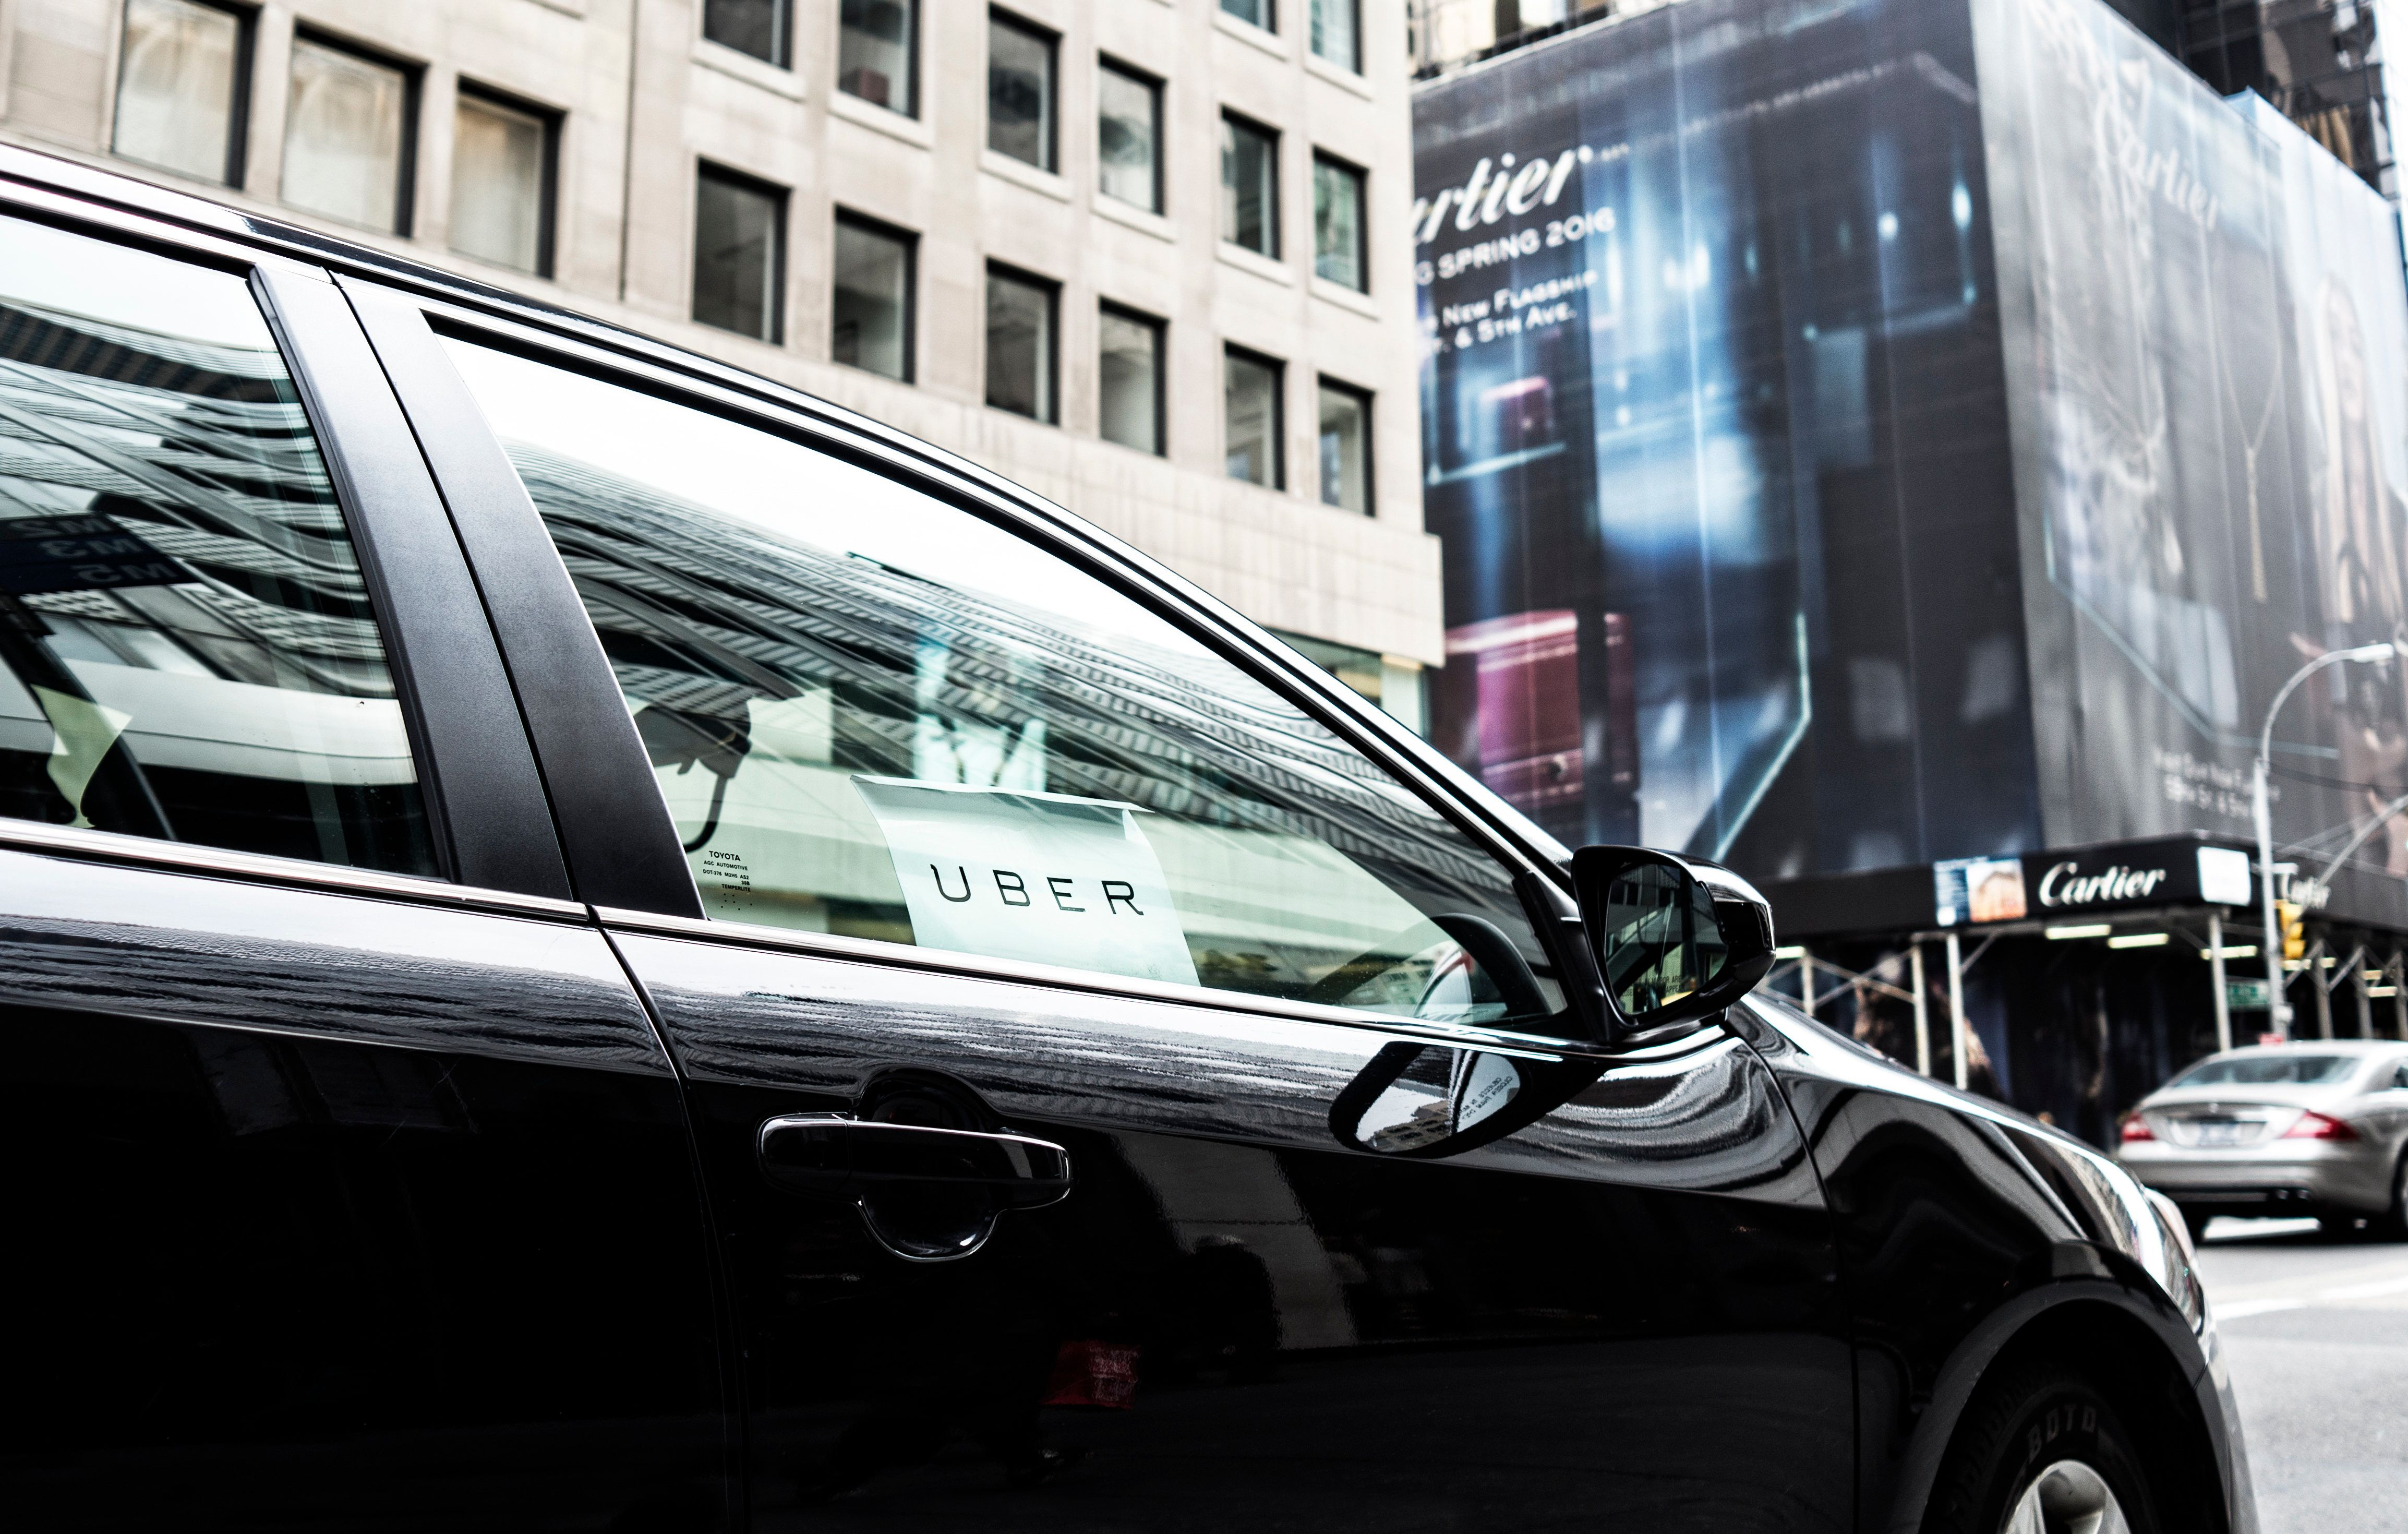 New York City, USA - March 5, 2016: Uber car service with sign in car window is waiting to pickup passengers on 5th Avenue in Manhattan, NY.